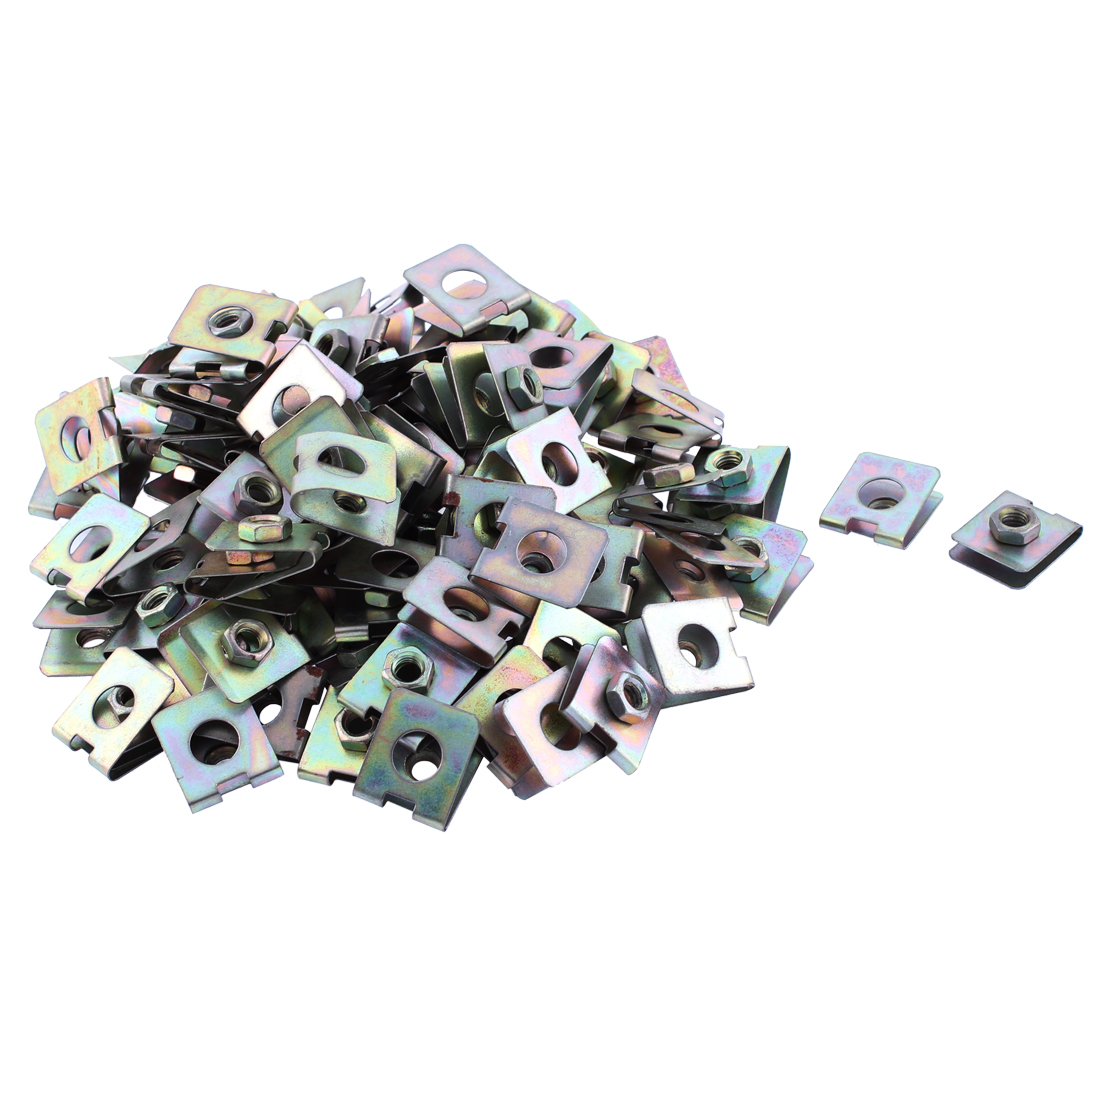 100 Pcs 23mm x 20mm Metal Plate U-Type Clips Speed Nuts for Car Panel Fender